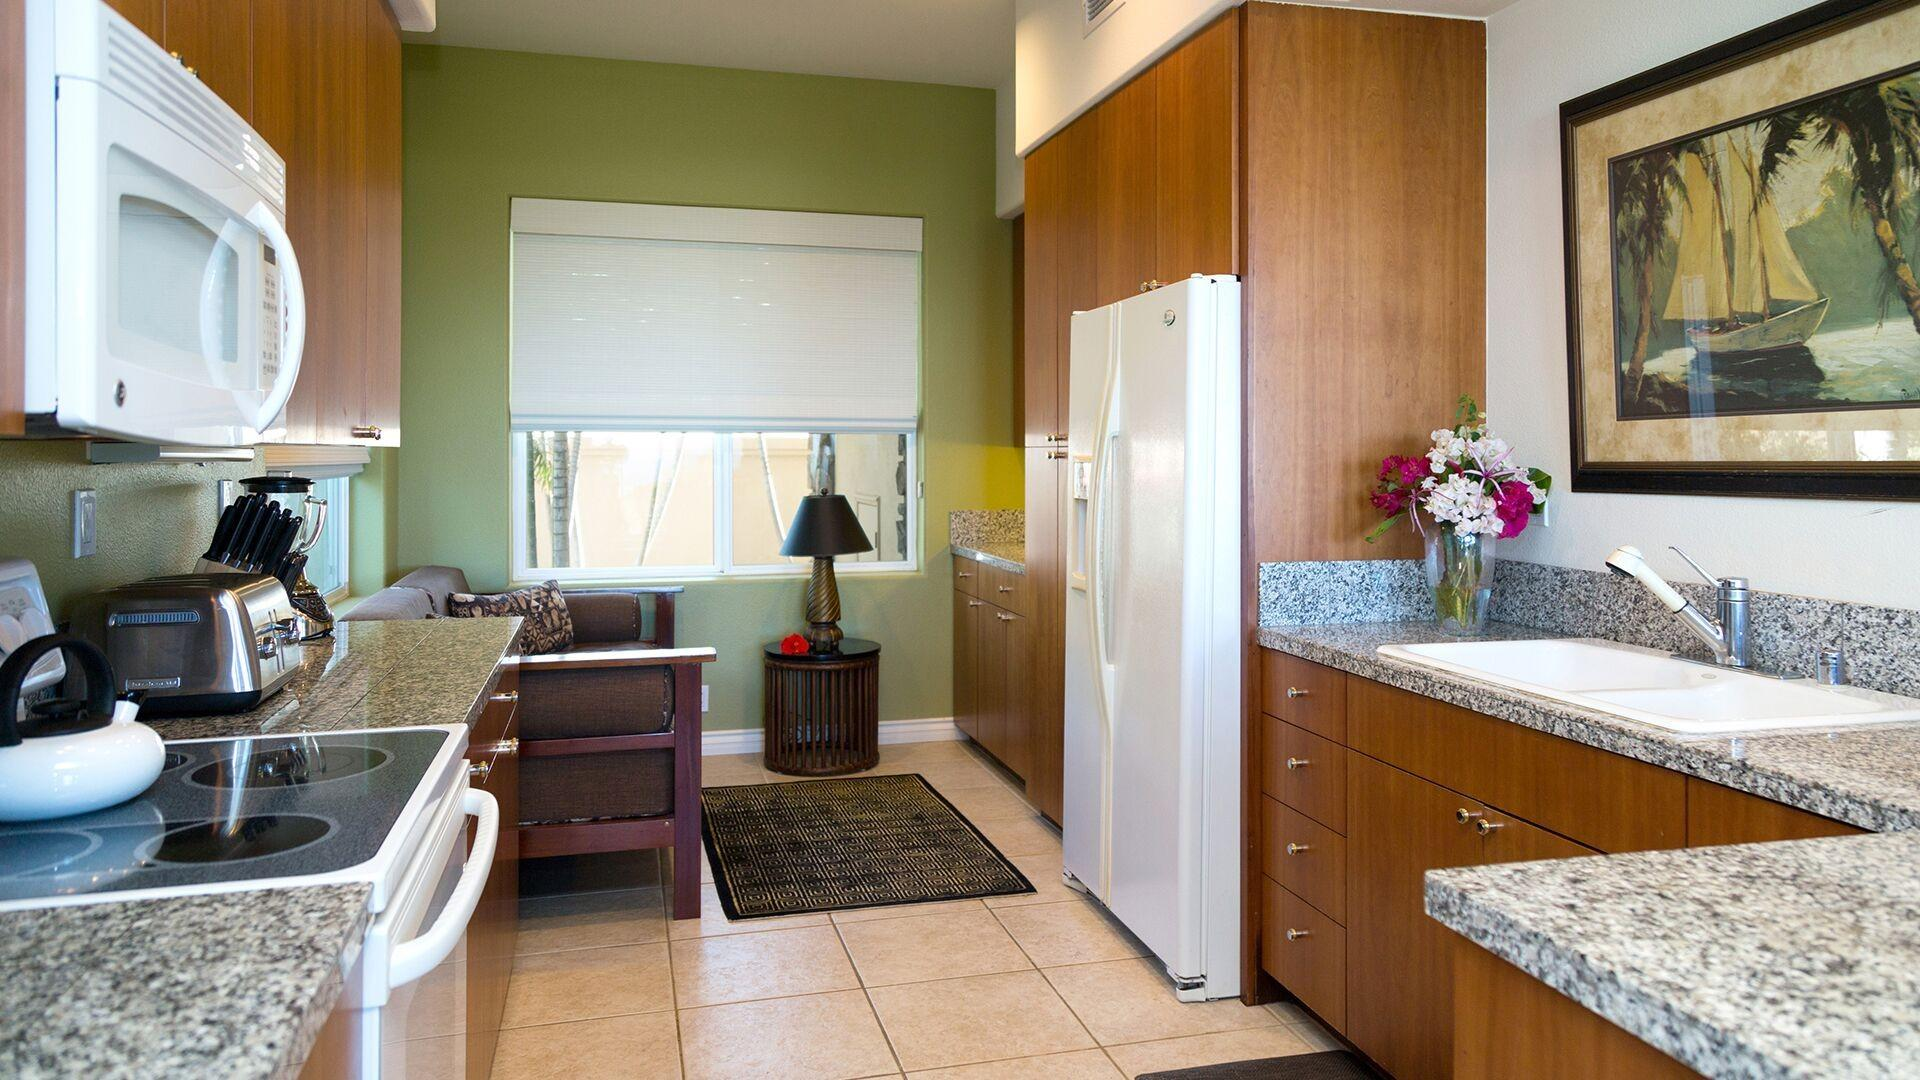 The modern kitchen has all the appliances you need and a day bed to relax while in-between preparing meals.